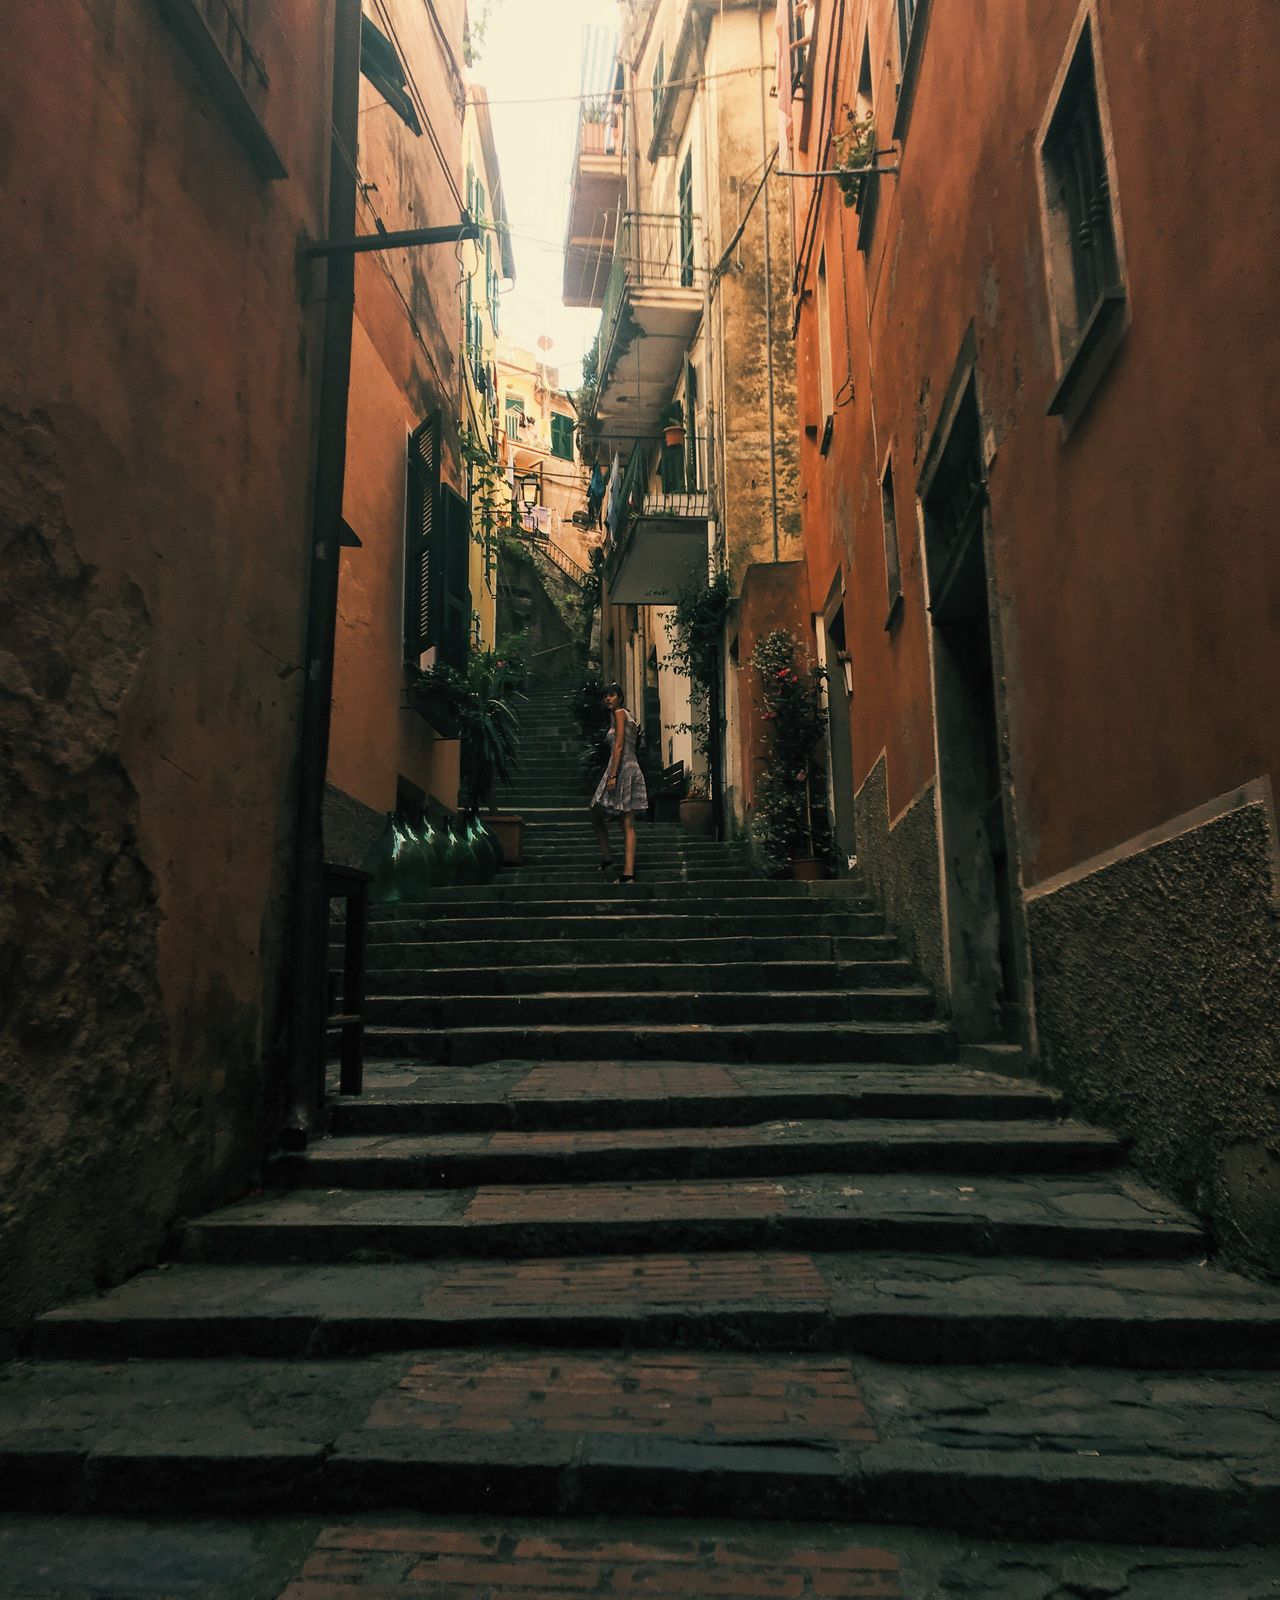 The Way Forward Architecture Built Structure Building Exterior Steps And Staircases Steps Staircase City Outdoors Day Sky